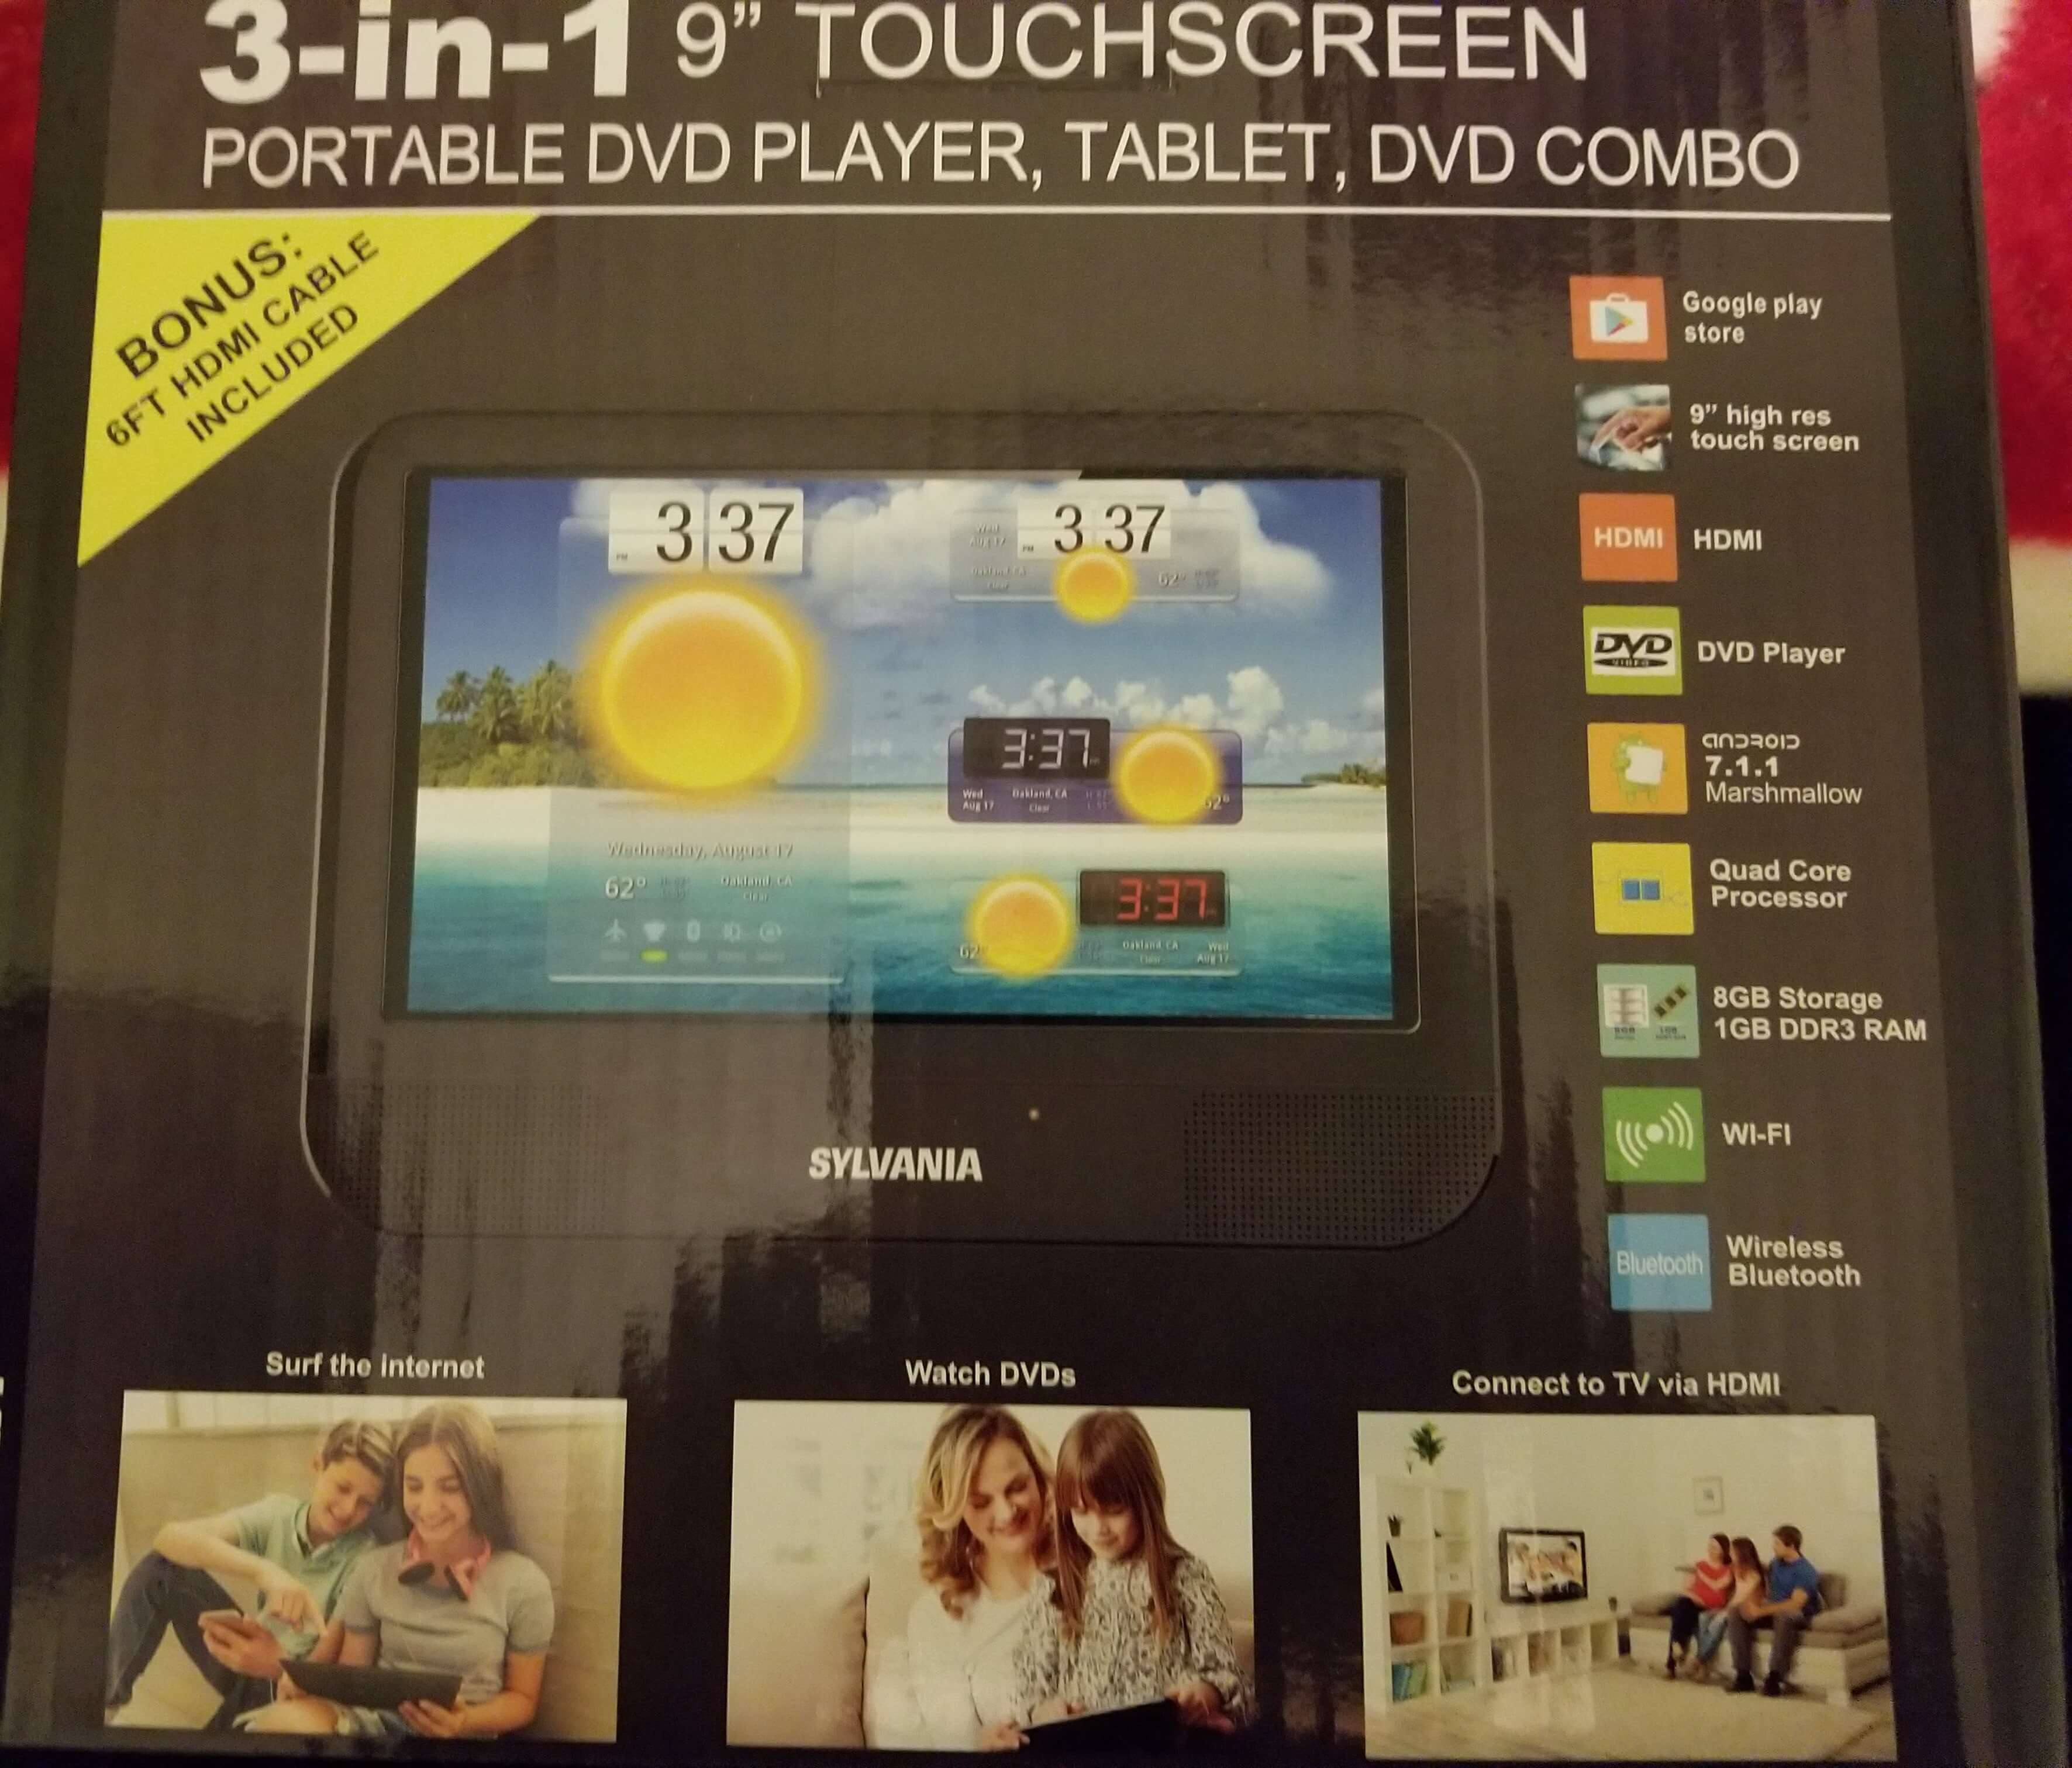 Odd Tech : Sylvania SLTDVD9220-C – A Portable DVD Player that Doubles as a Android Tablet